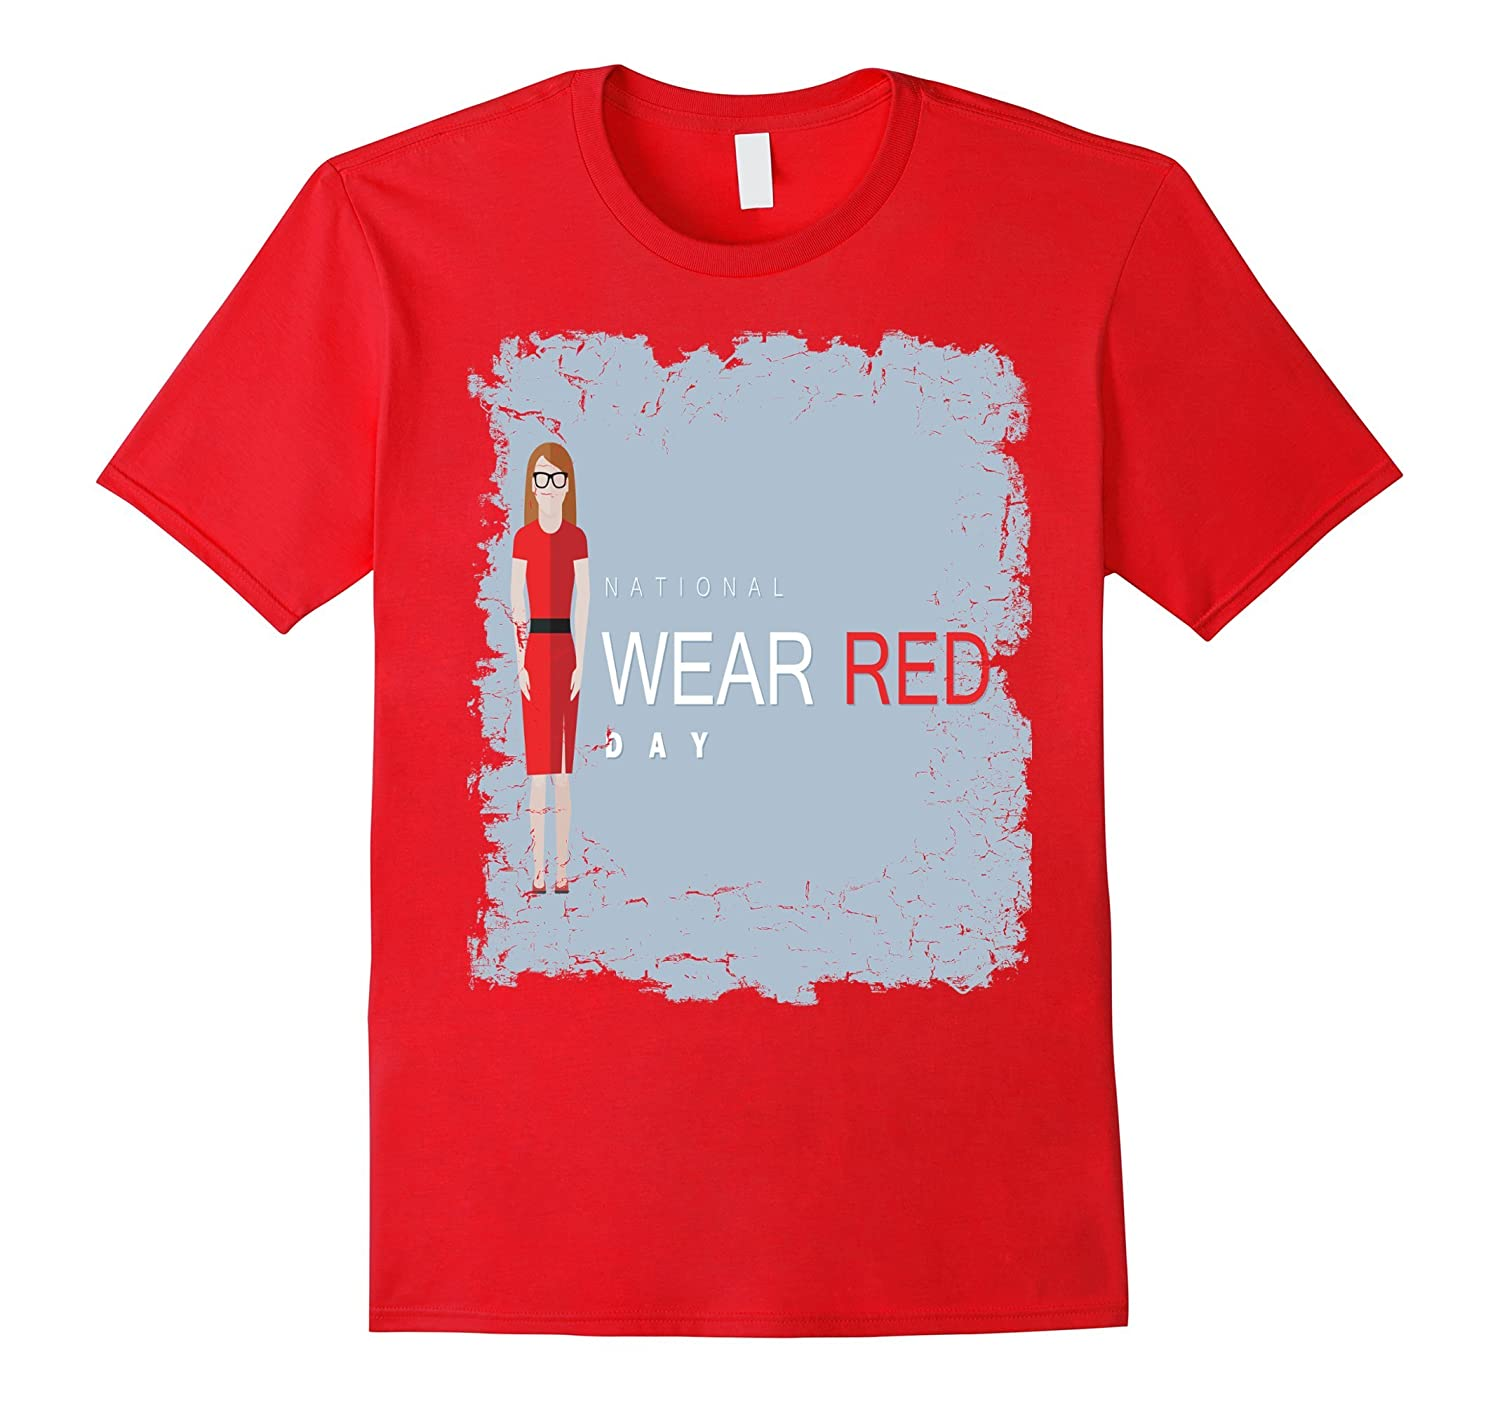 Wear red day shirt cl colamaga for What to wear with a red shirt